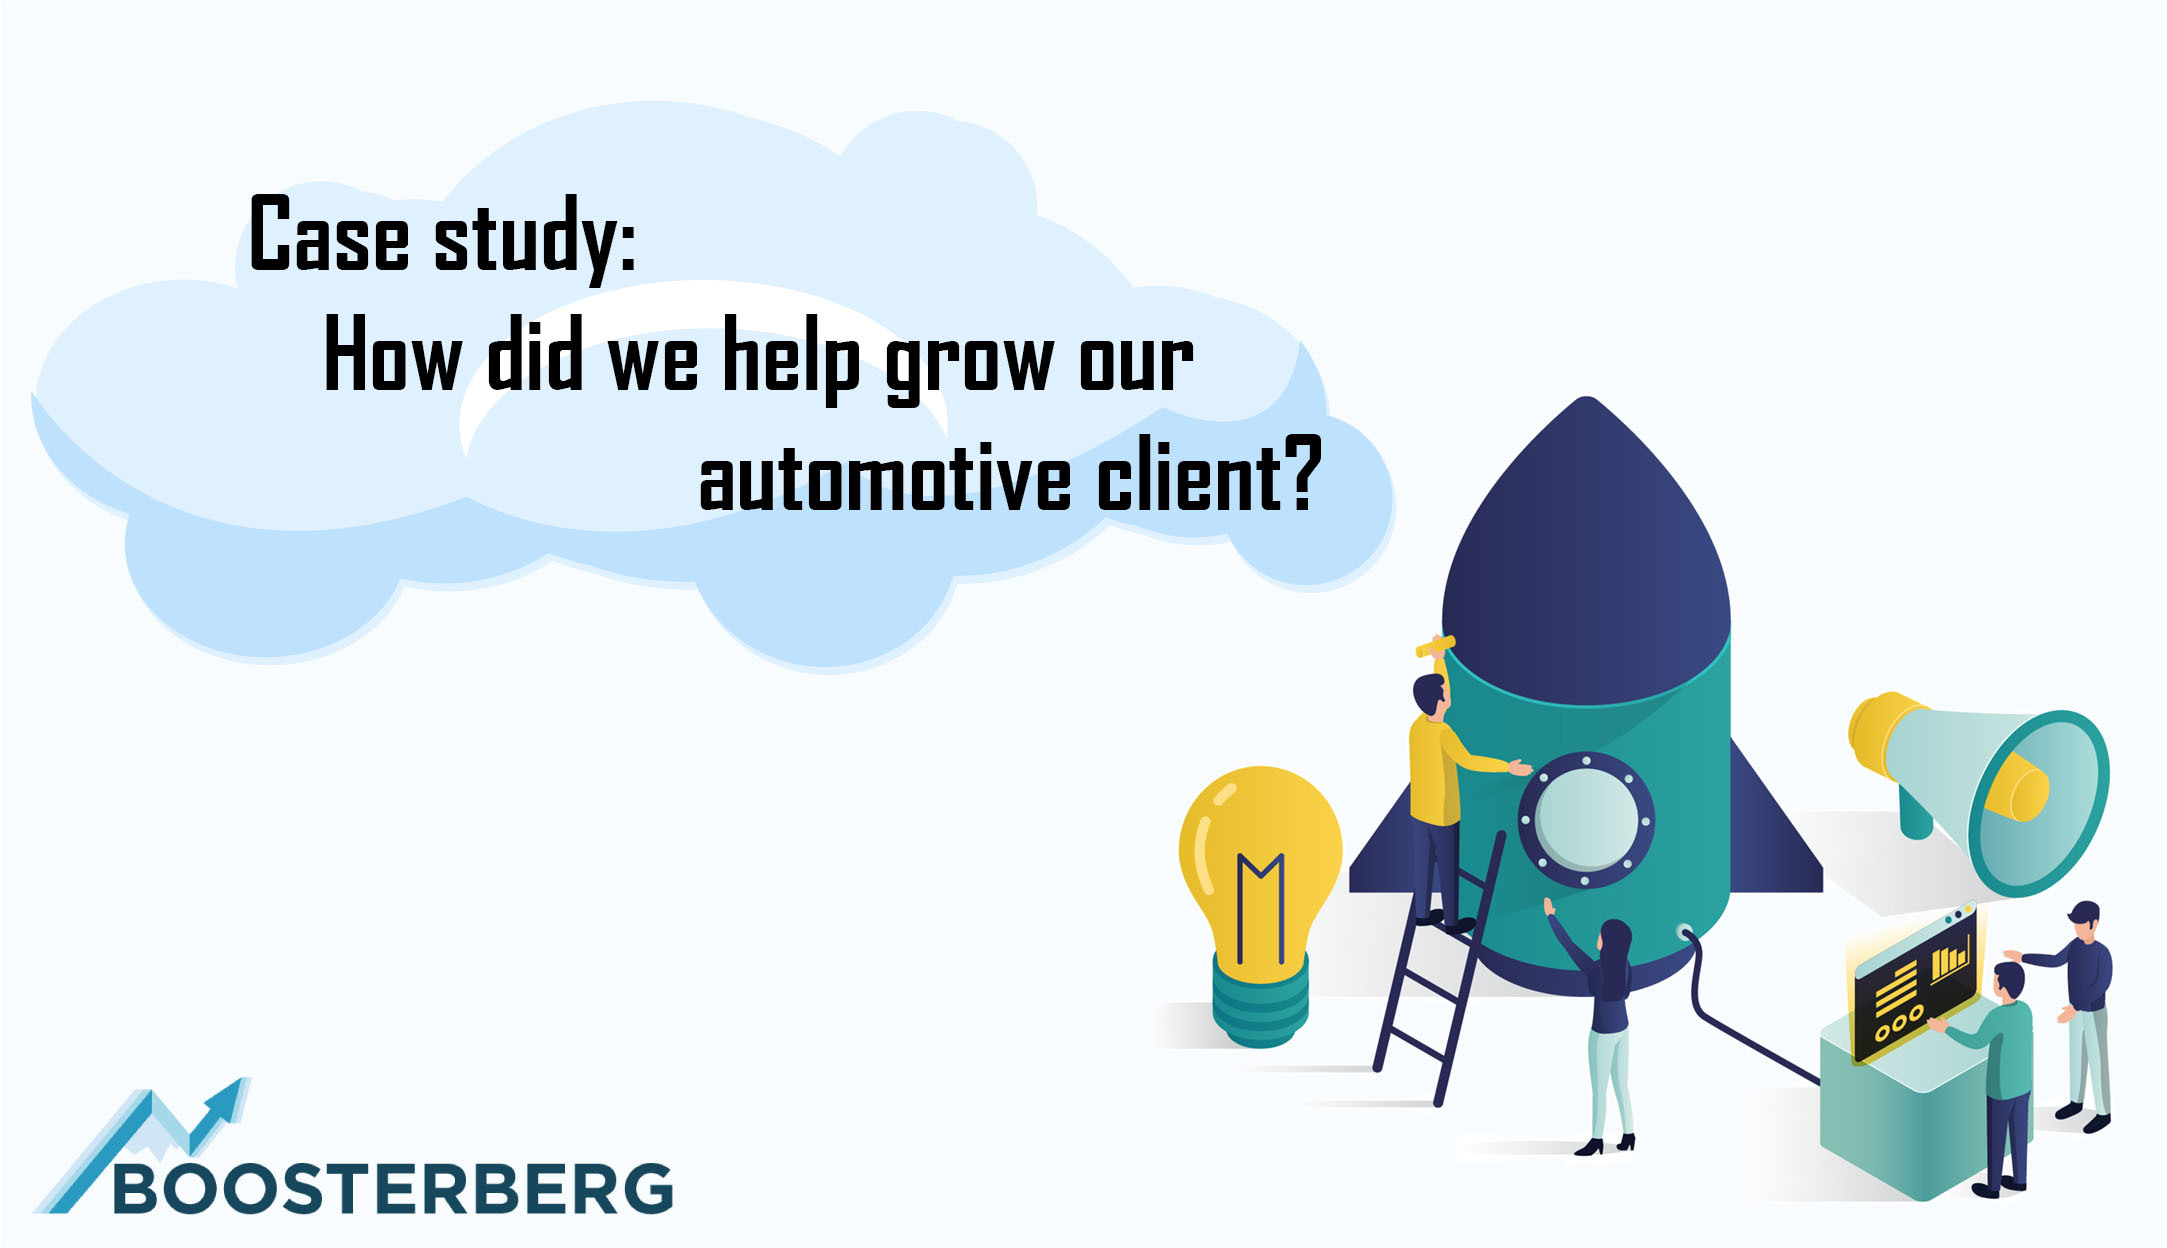 Case study: How did we help grow our automotive client?